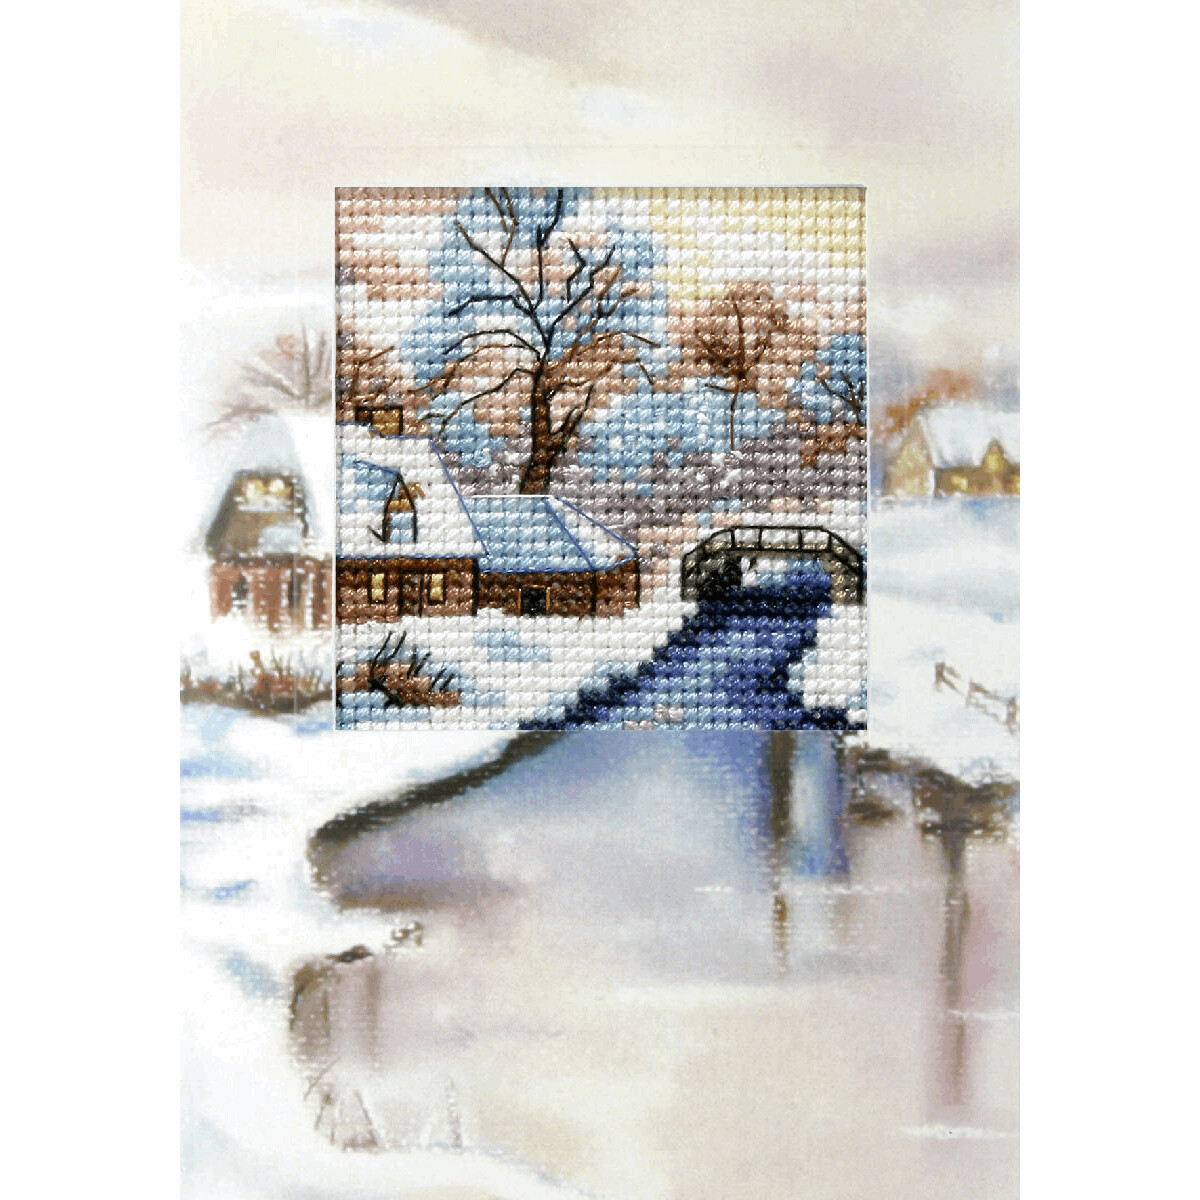 Counted Cross Stitch Kit Greetings Card: Winter River